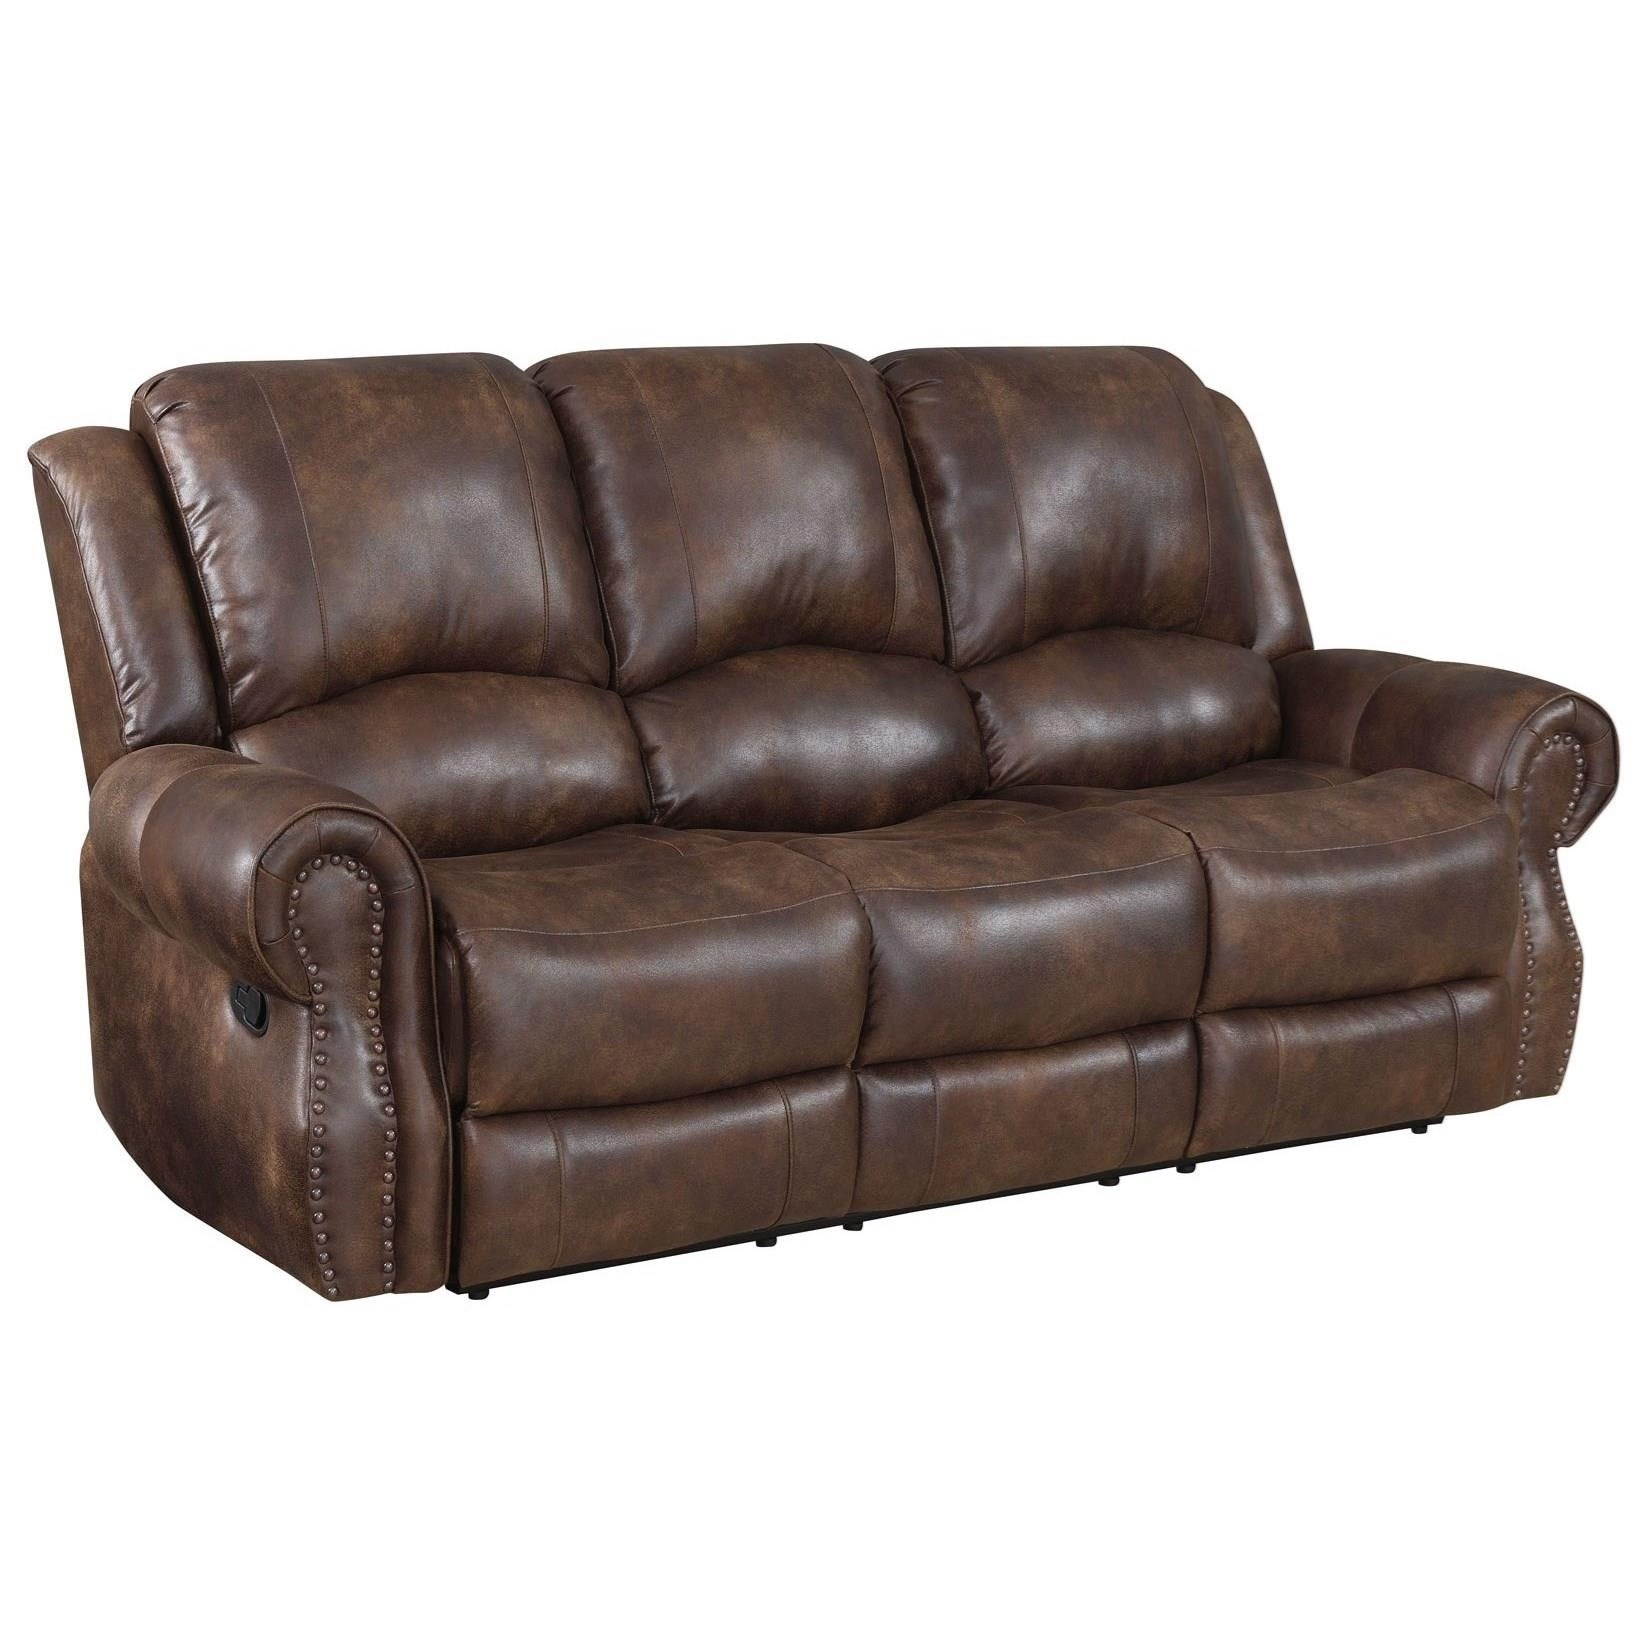 Faux Leather Manual Recliner Sofa